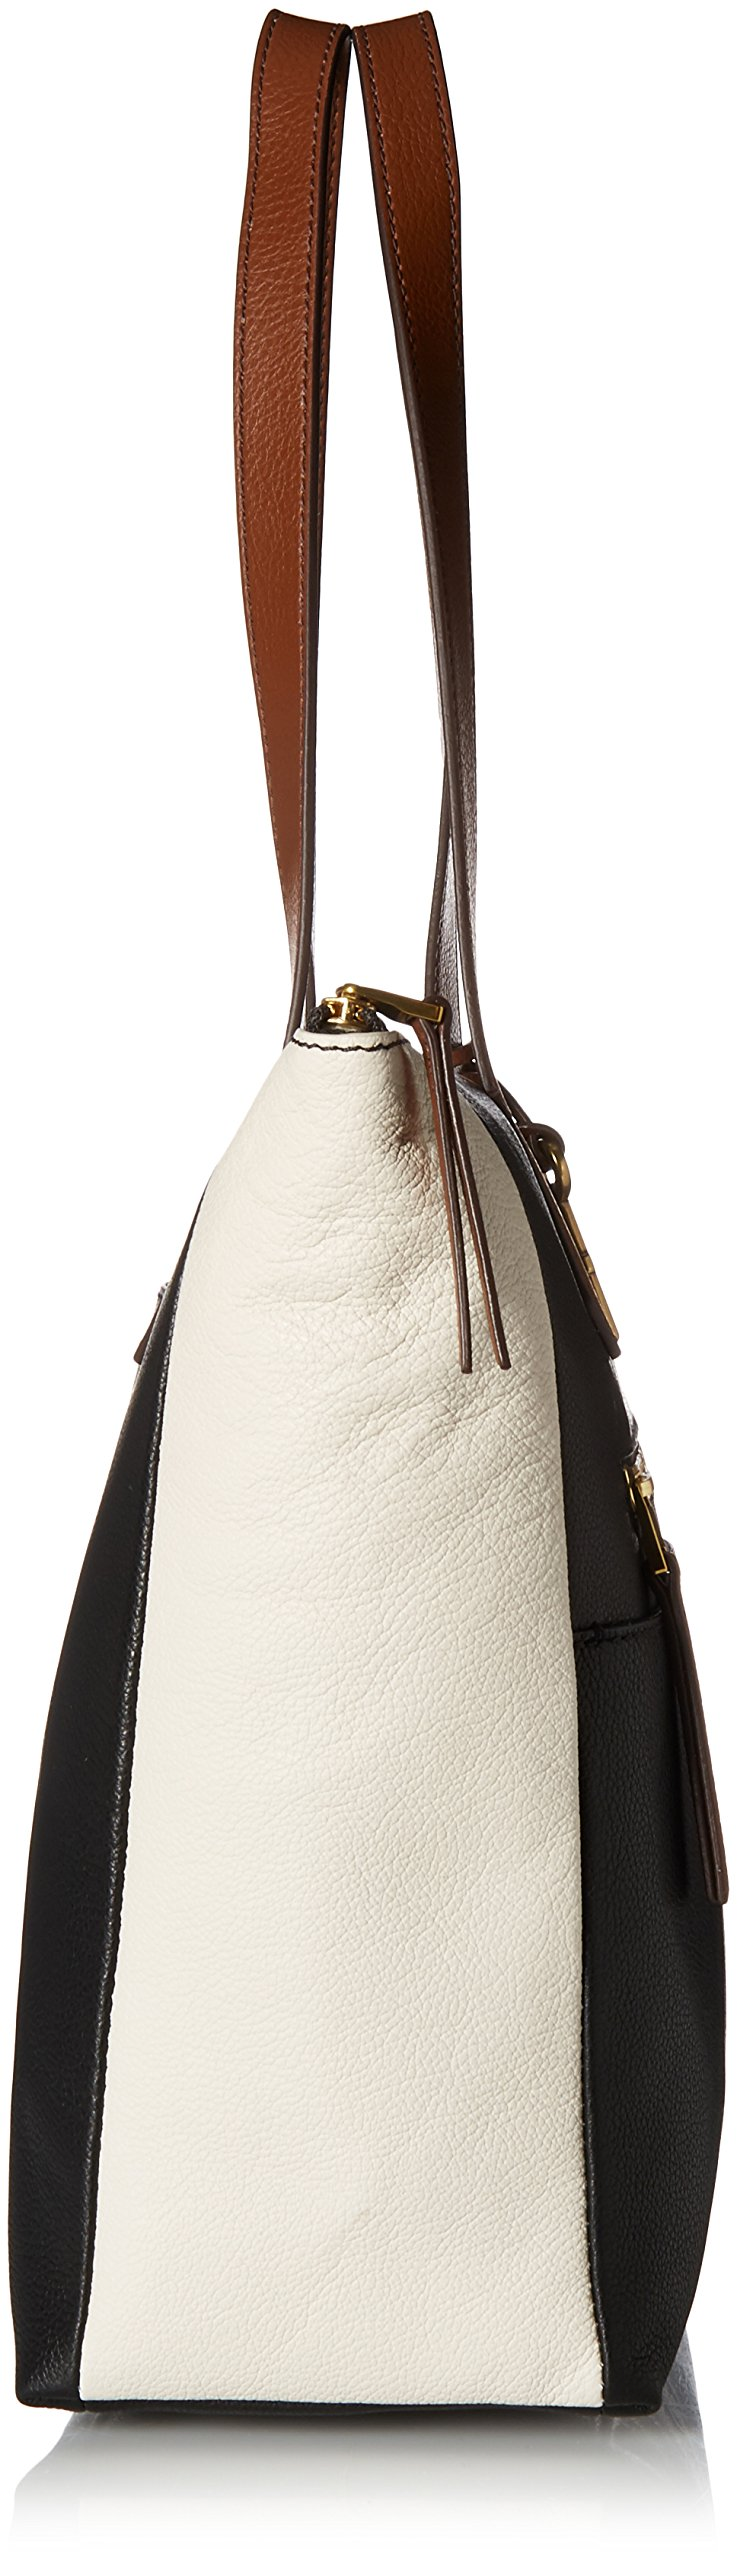 Fossil Fiona E/W Tote Bag, Black/White by Fossil (Image #3)